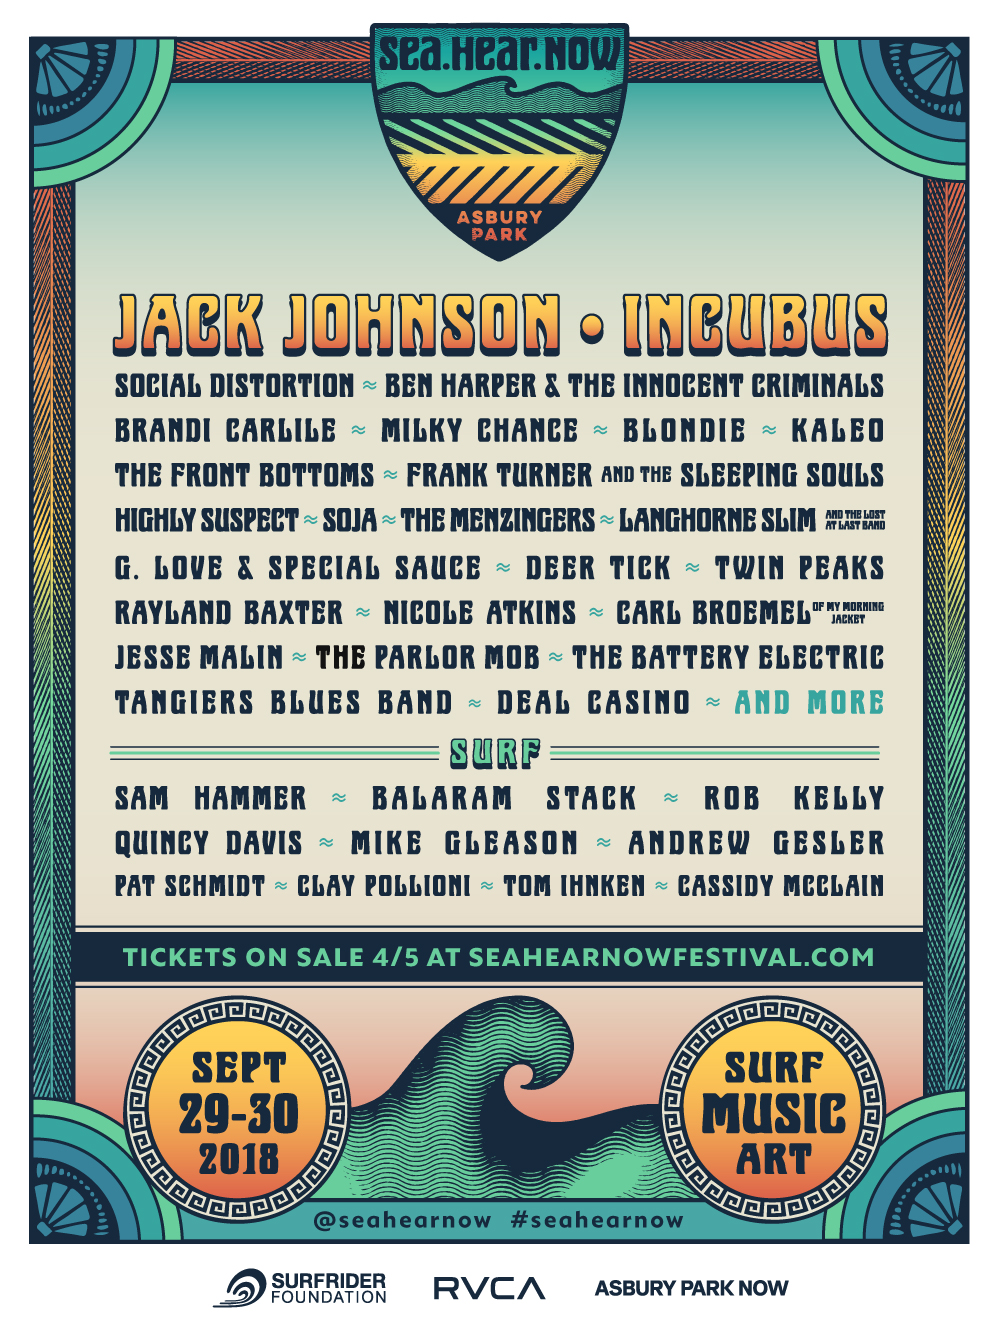 Jack Johnson Incubus To Headline First Ever Sea Hear Now Festival